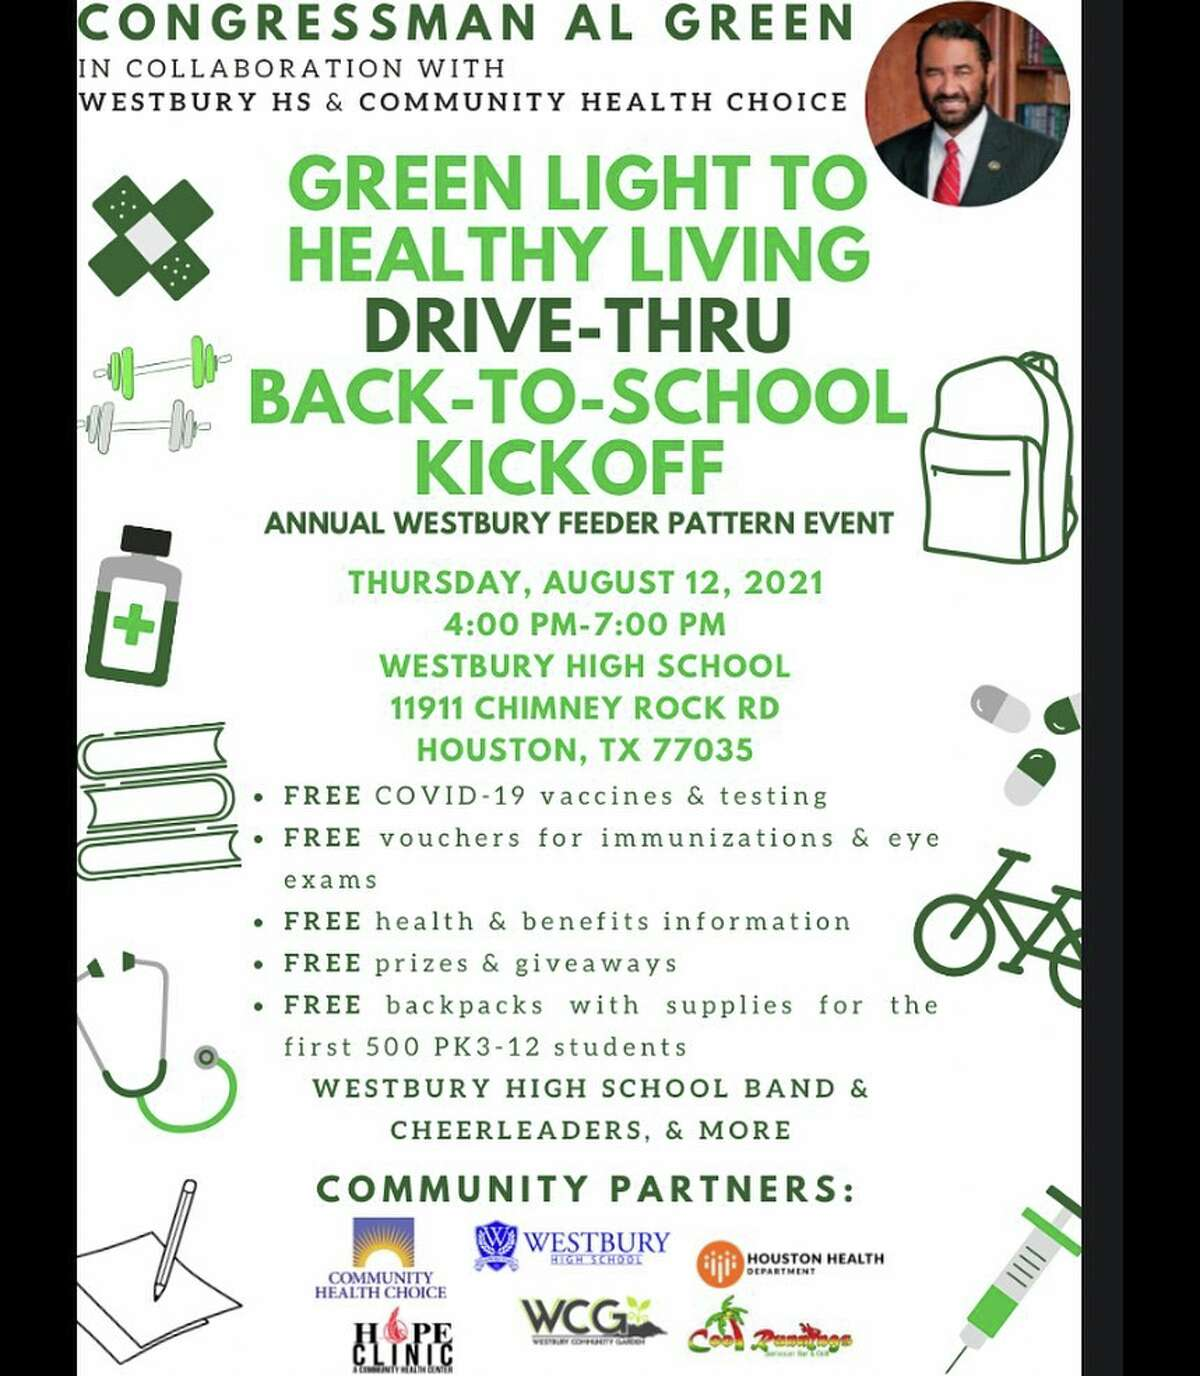 Rep. Al Green is hosting a back-to-school event with supplies and COVID-19 vaccines for children as they return to the classroom.